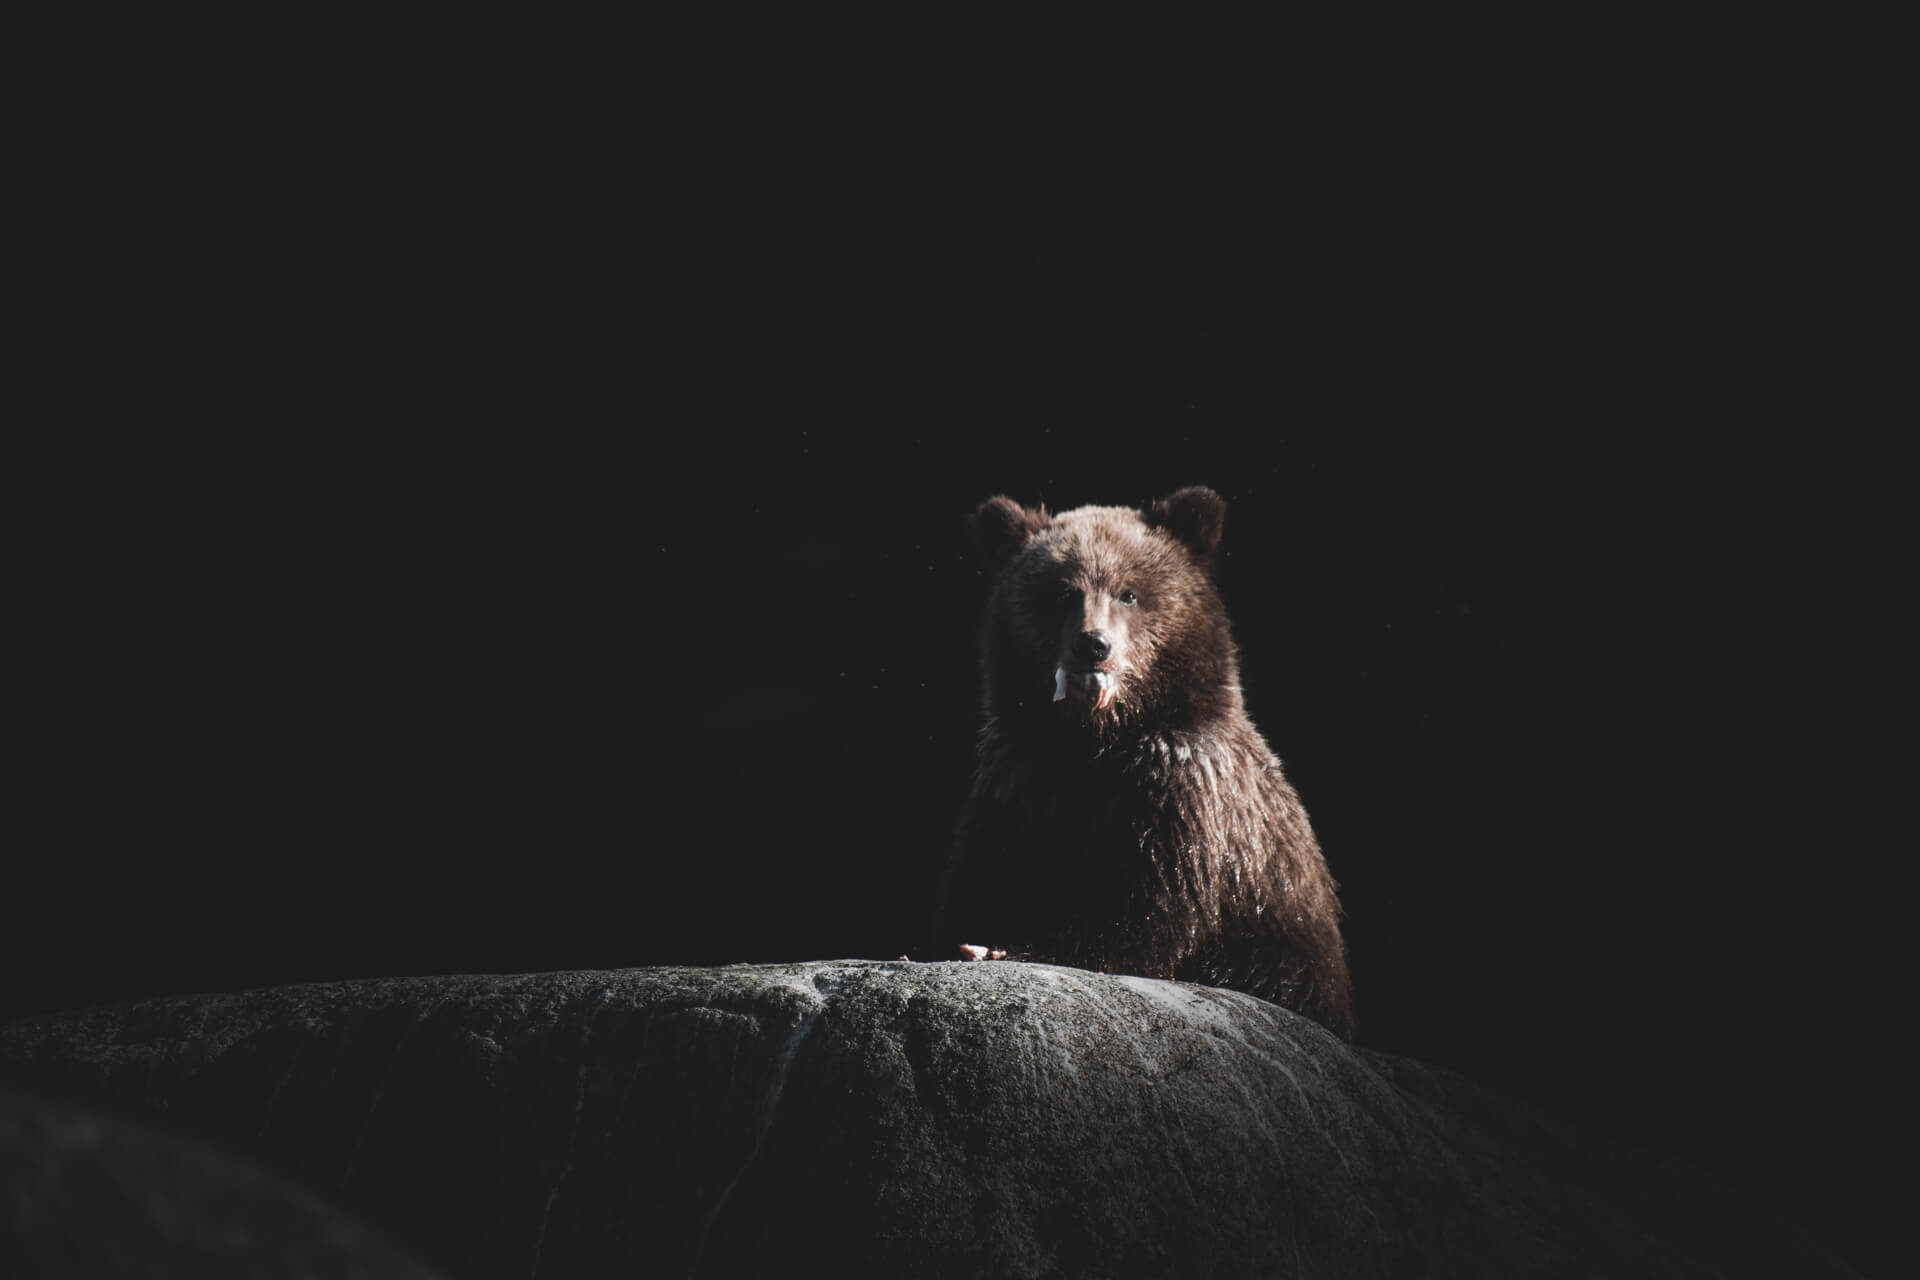 A young Grizzly eating salmon on a stone